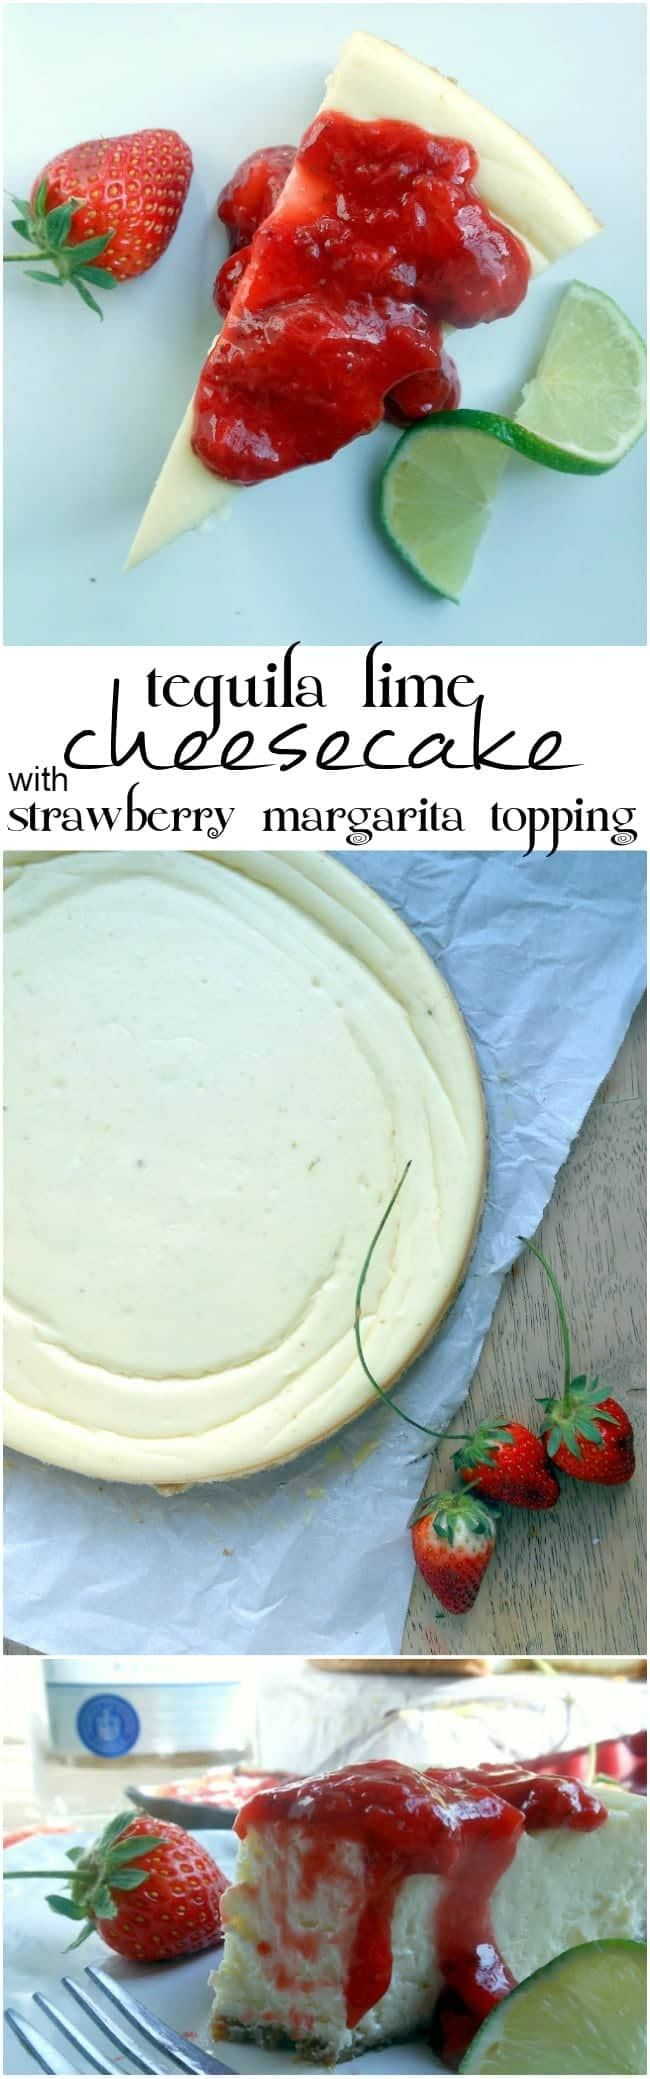 Tequila Lime Cheesecake with Strawberry Margarita Topping - Sugar Dish Me